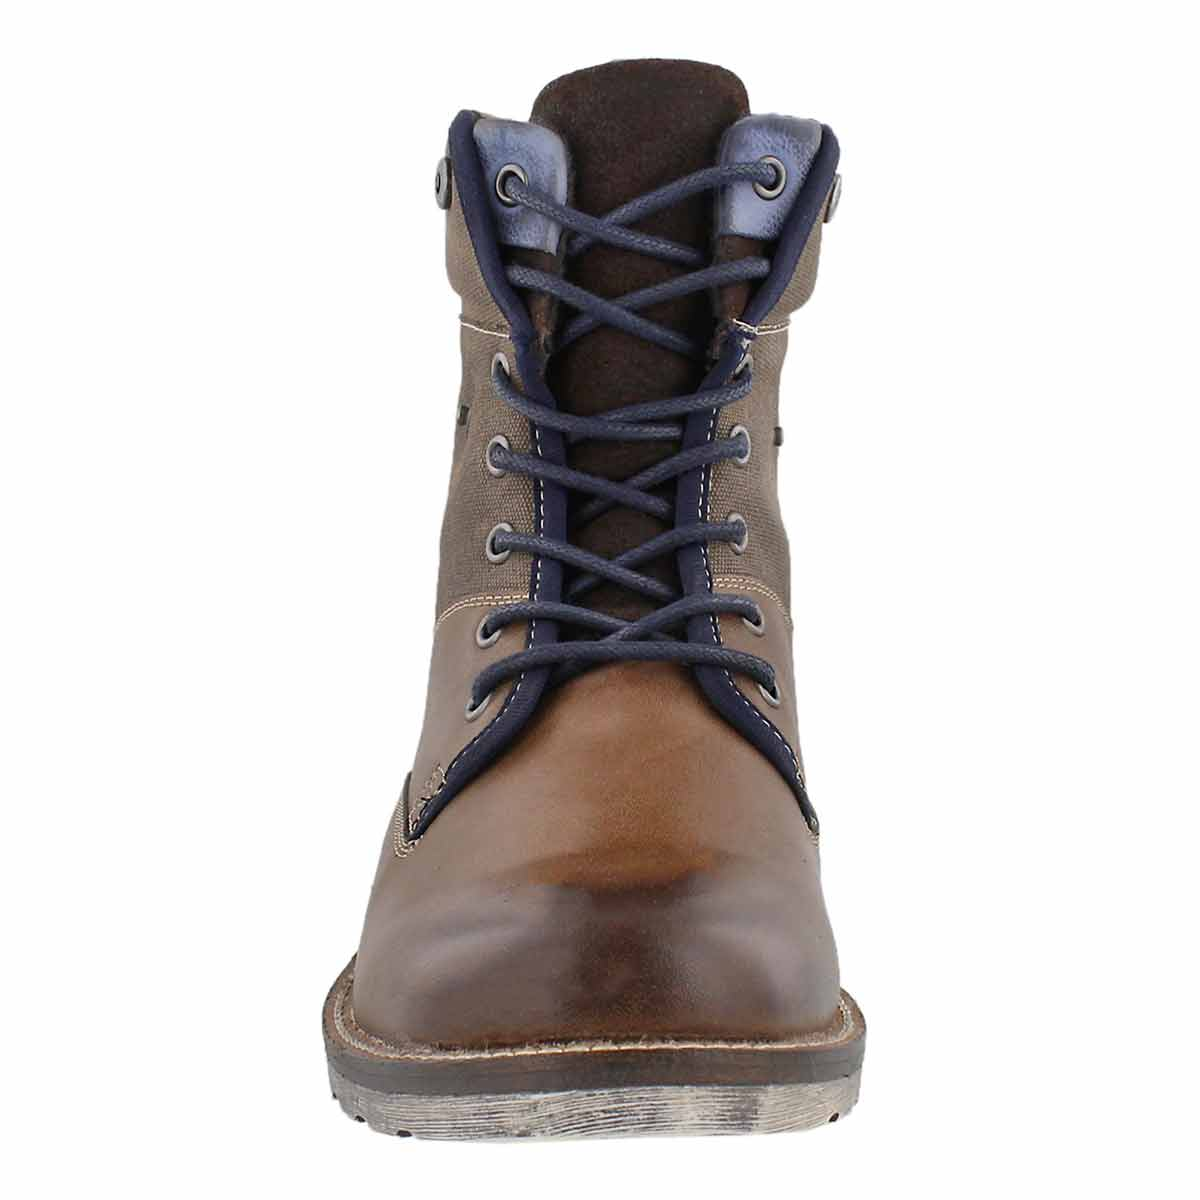 Mns Arco brown lace up ankle boot